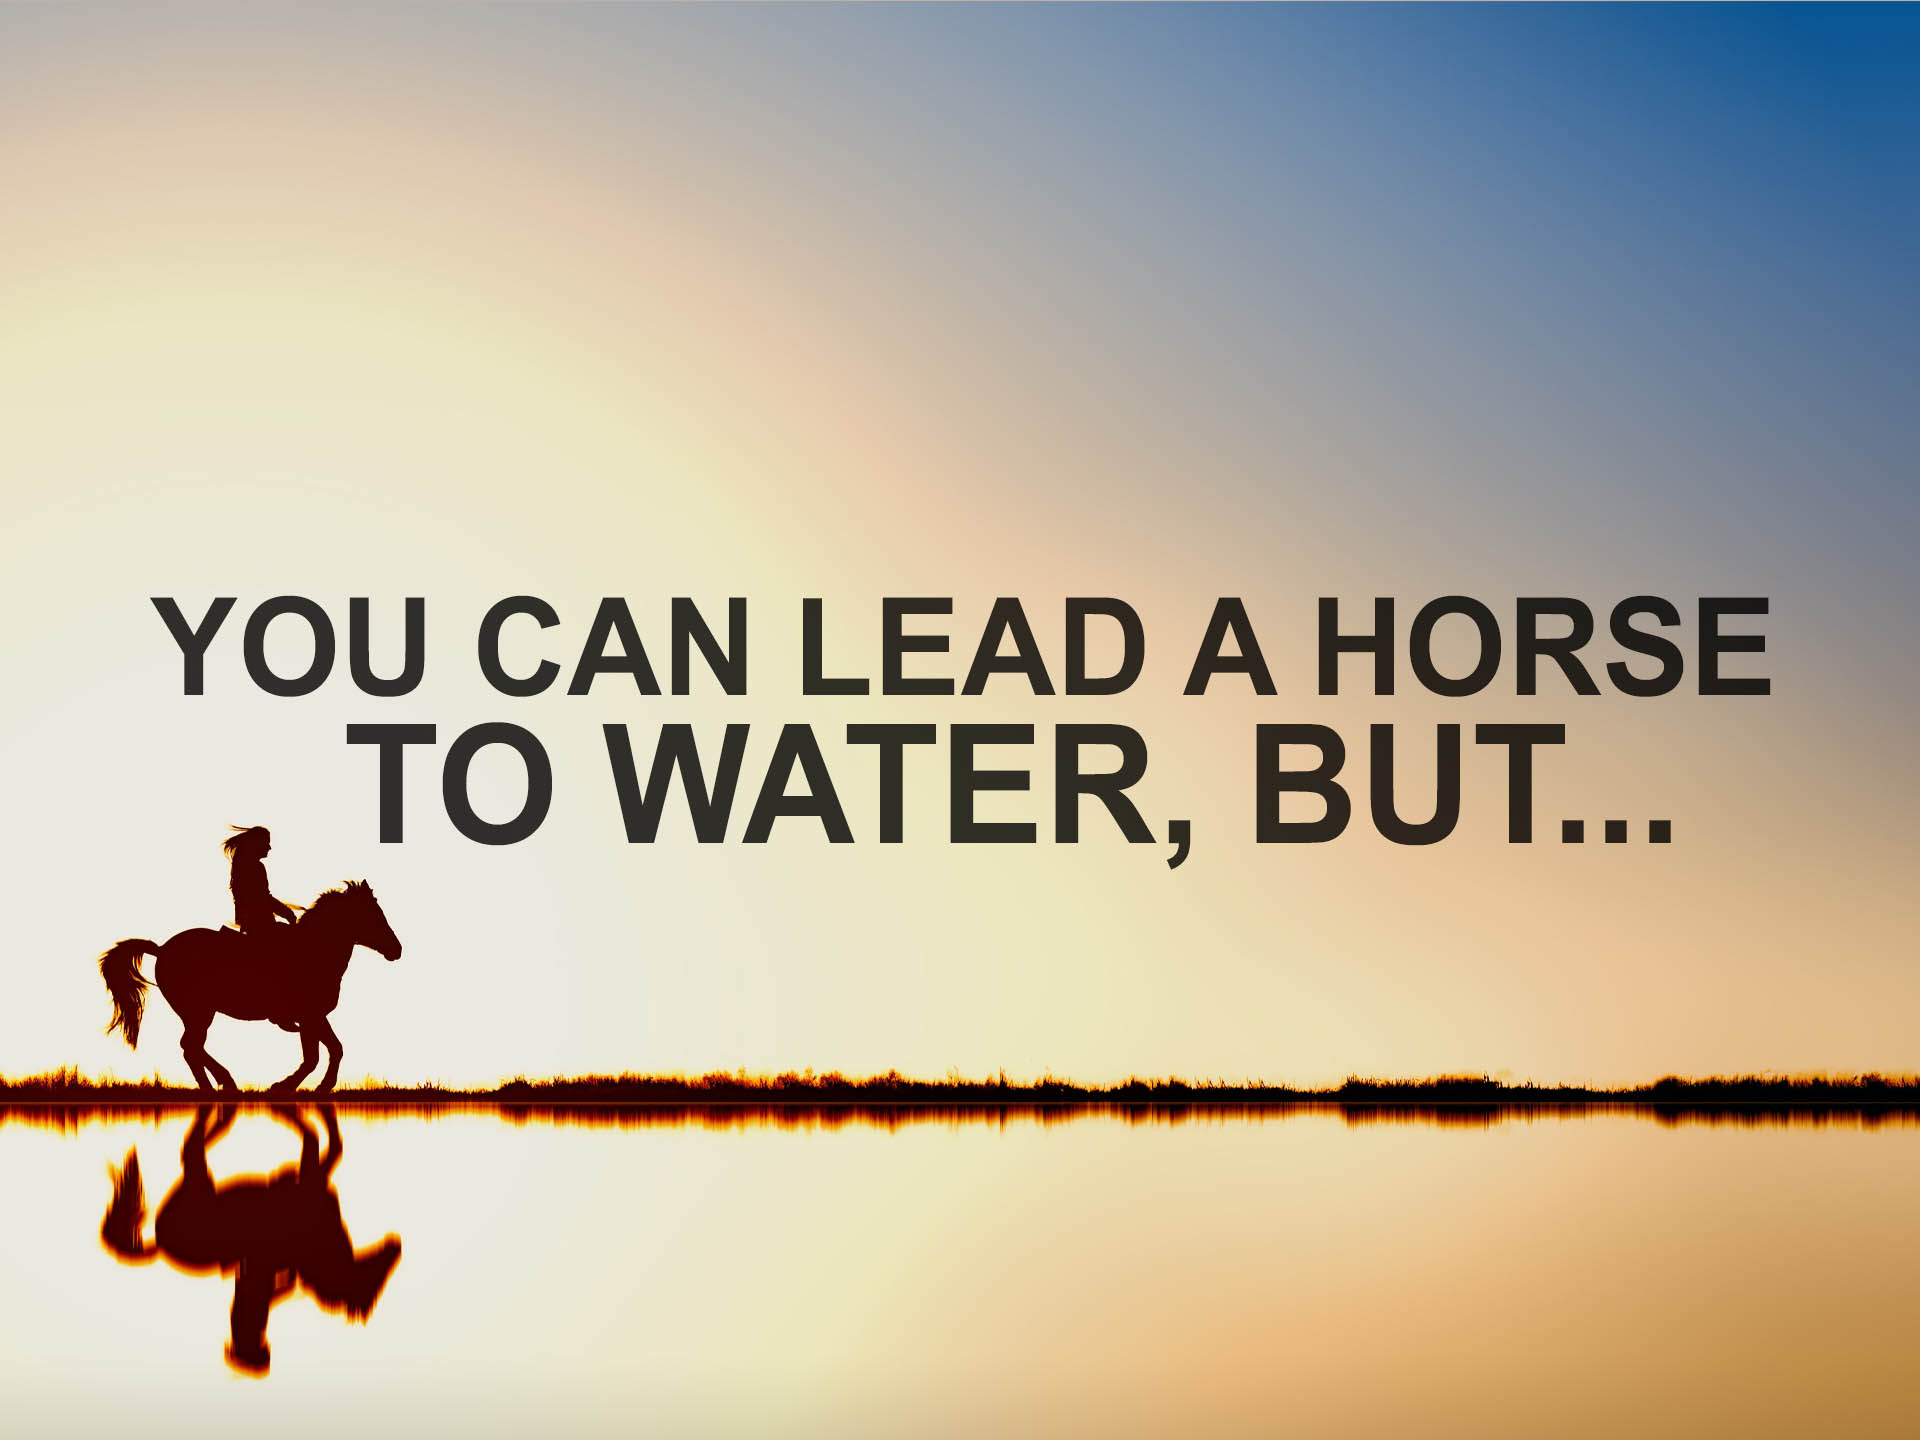 You Can Lead a Horse to Water, But...